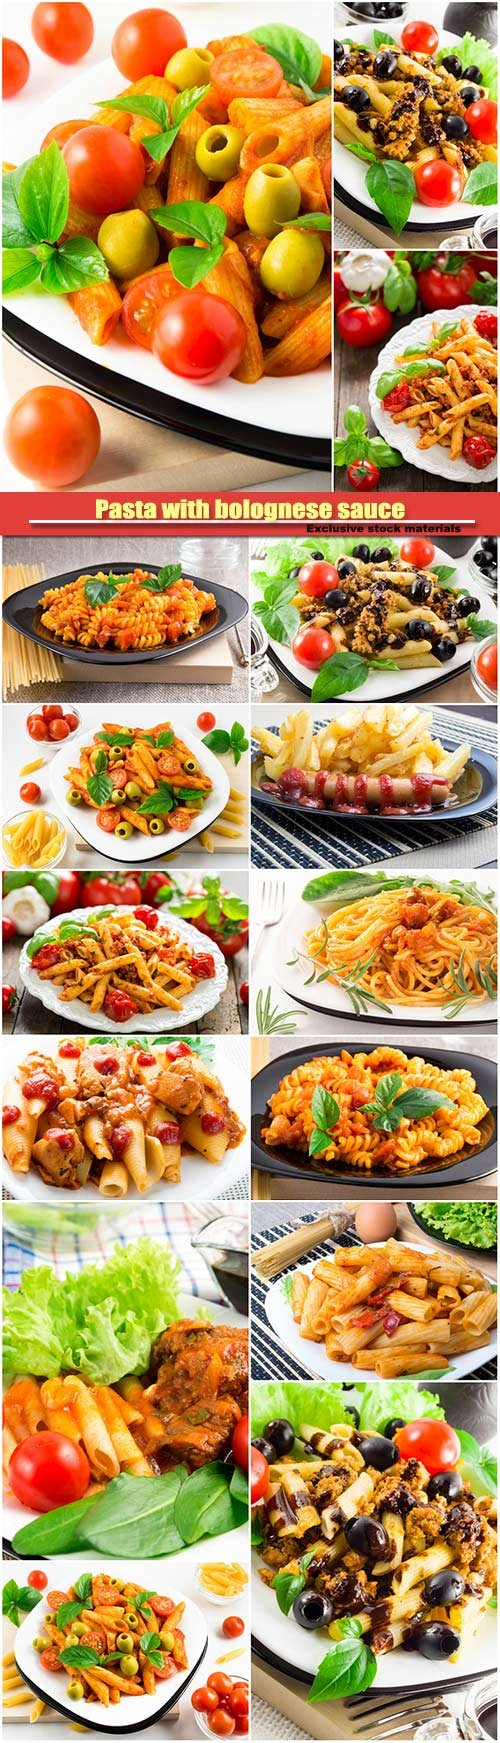 Pasta with bolognese sauce, beef meat, olives and cherry